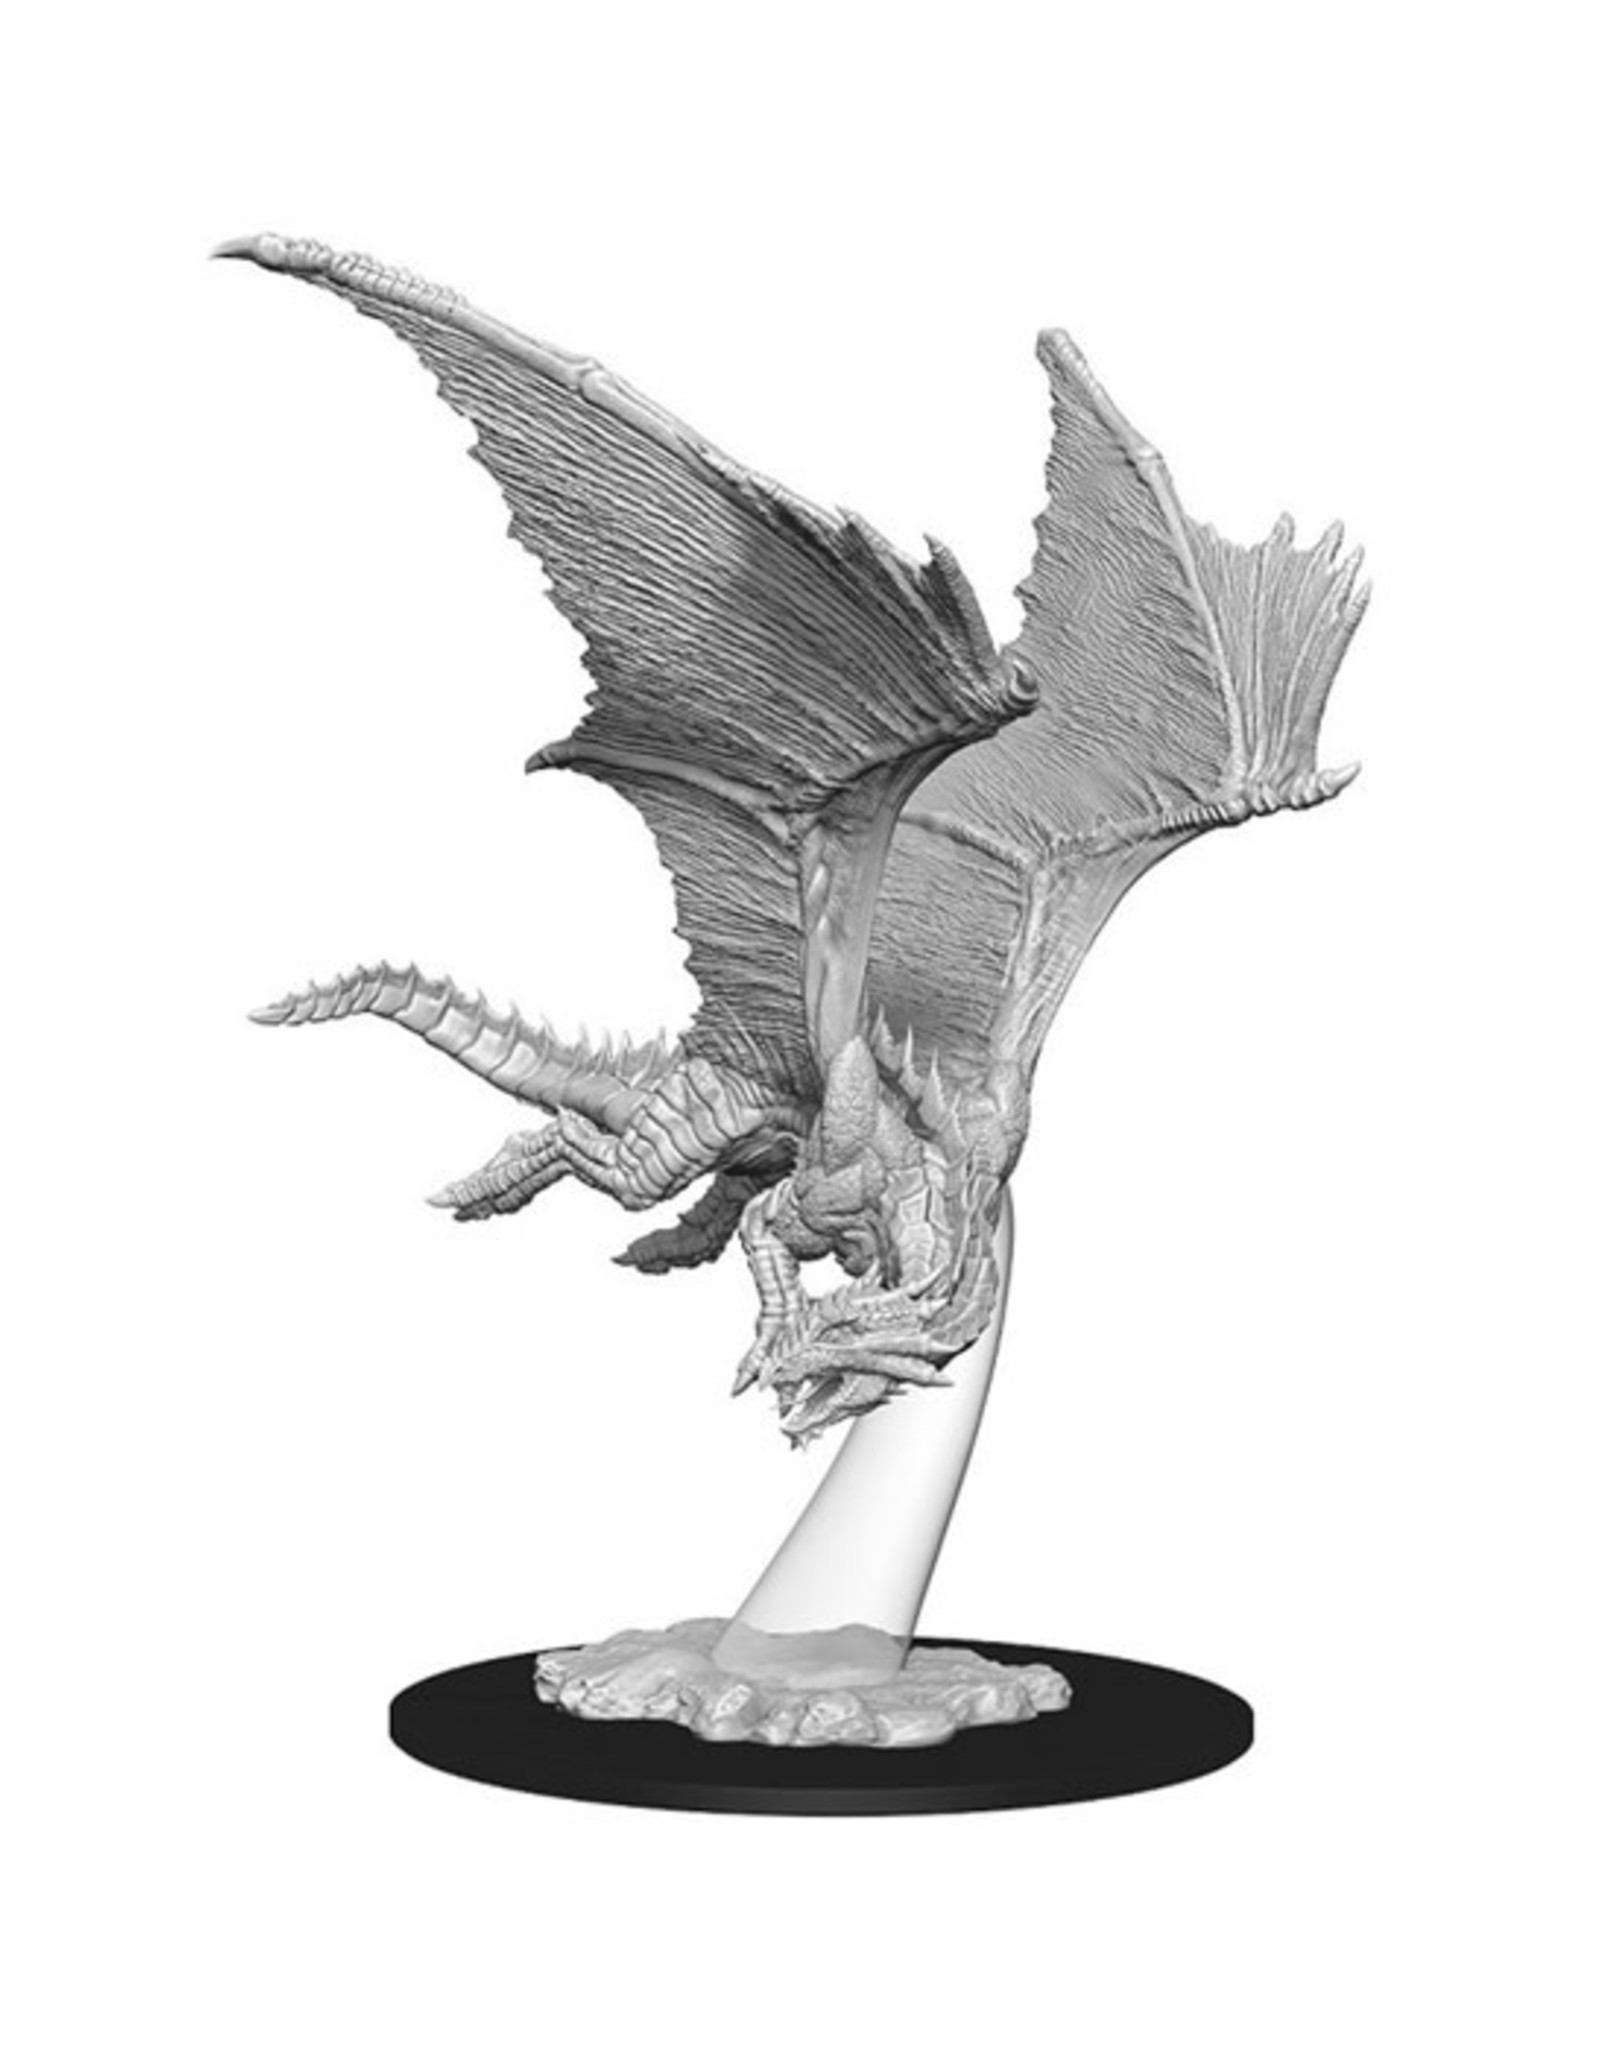 Dungeons & Dragons Dungeons & Dragons: Nolzur's - Young Bronze Dragon